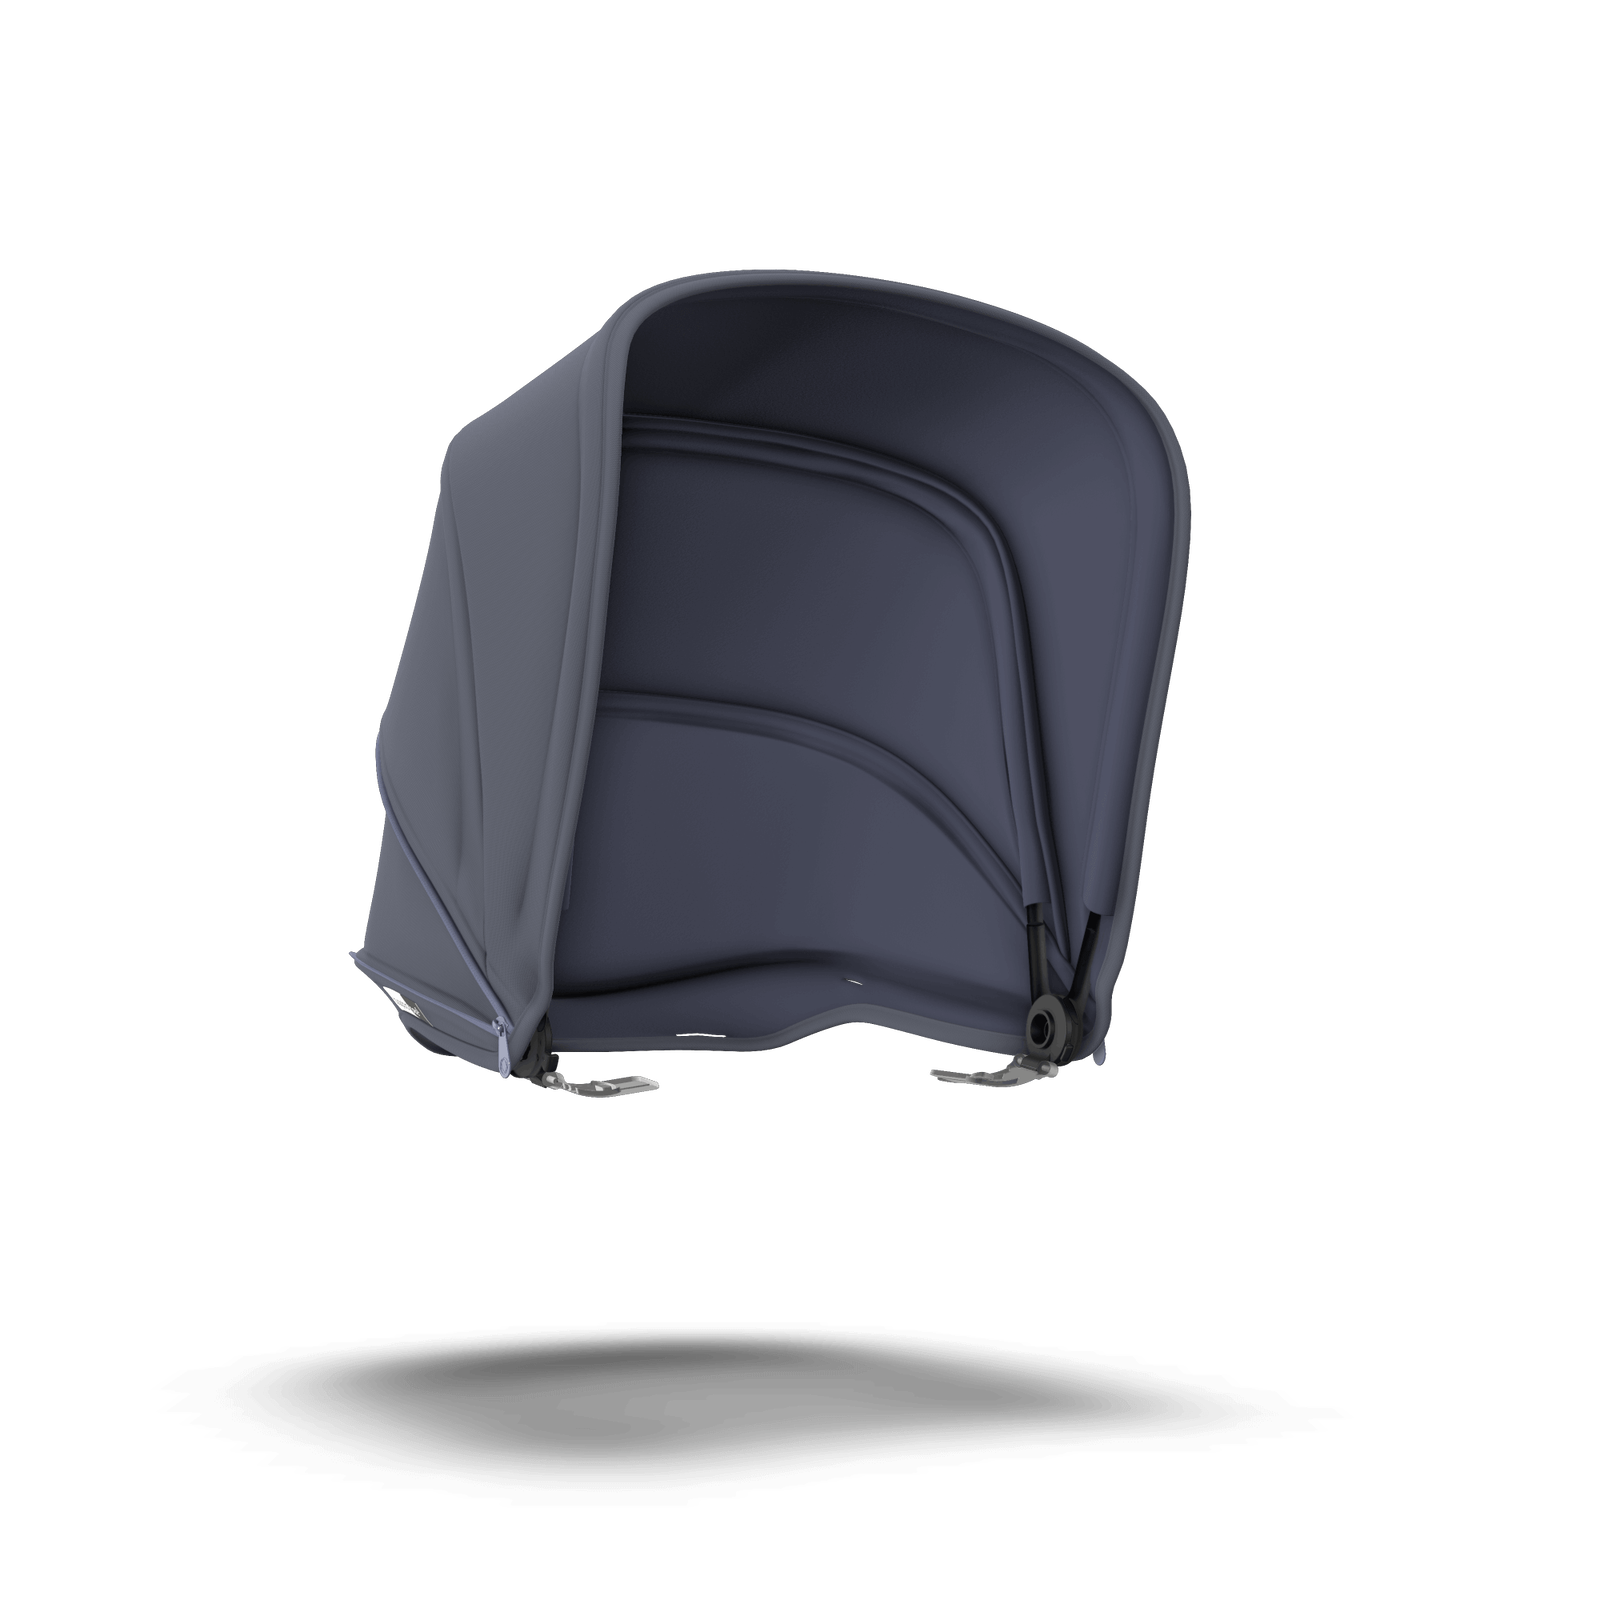 PA Bugaboo Bee5 sun canopy special